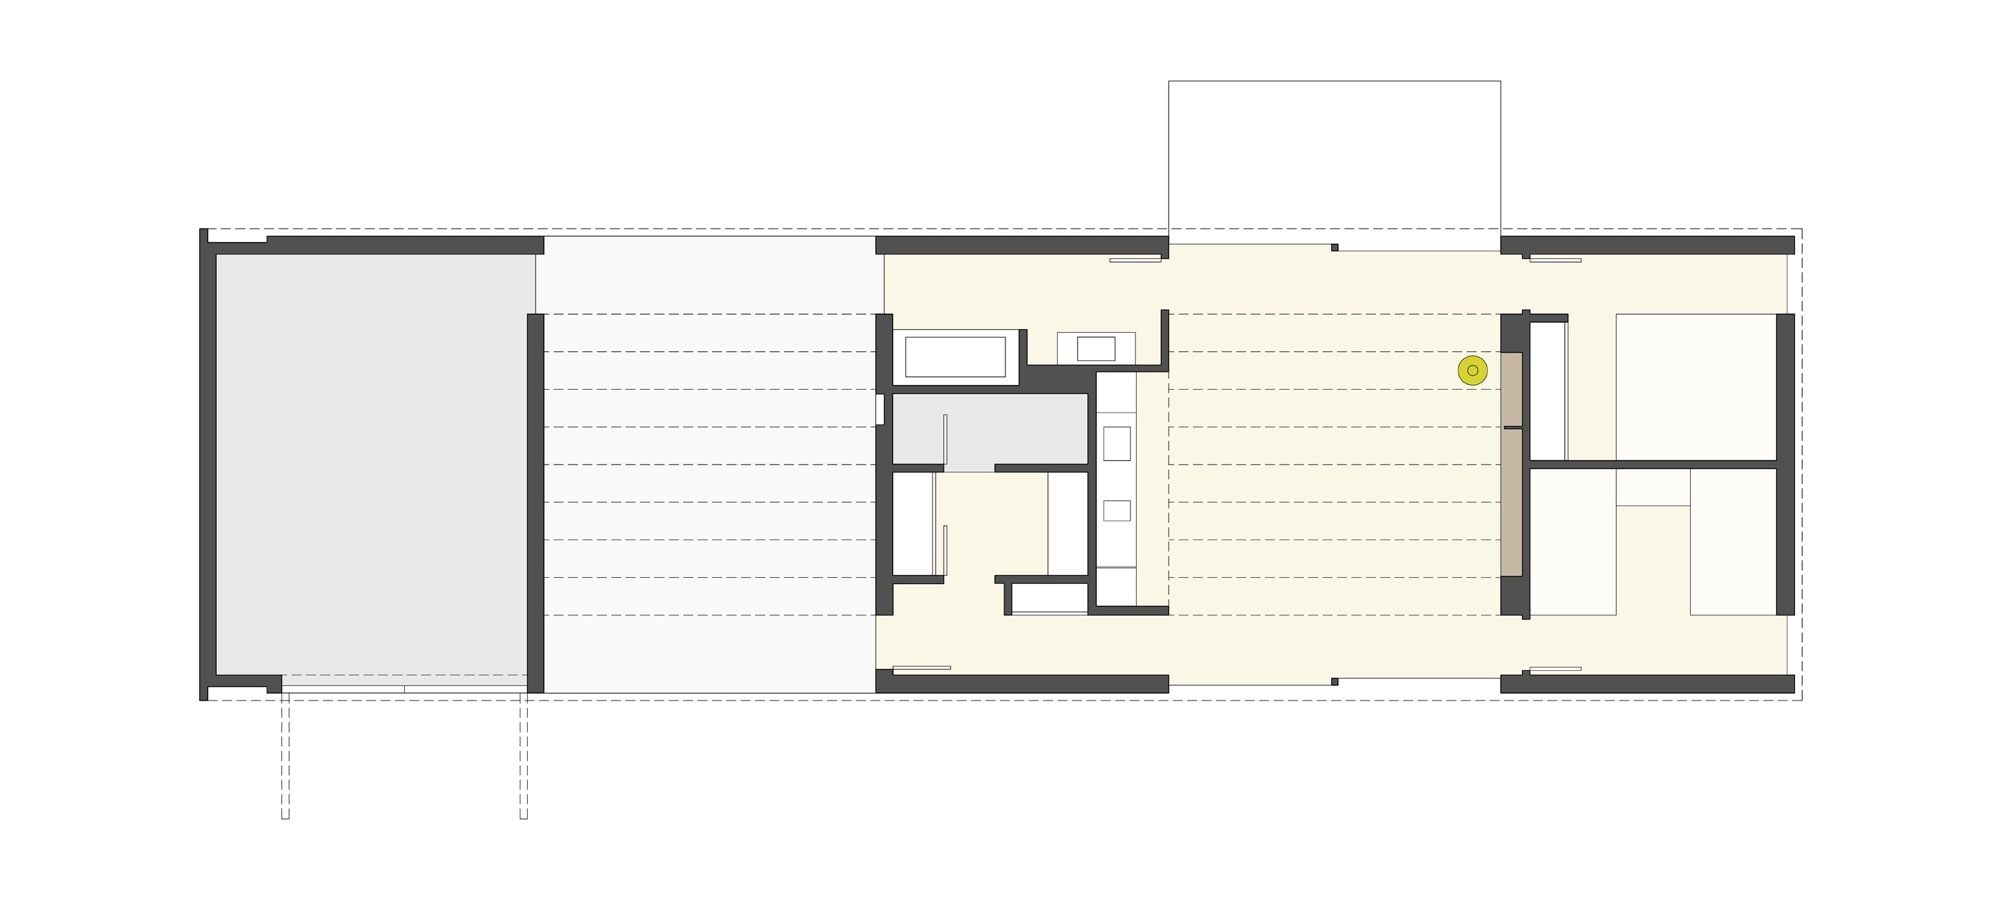 Vacation Cabin Floor Plans Galer 237 A De Caba 241 A Lineal Johnsen Schmaling Architects 11